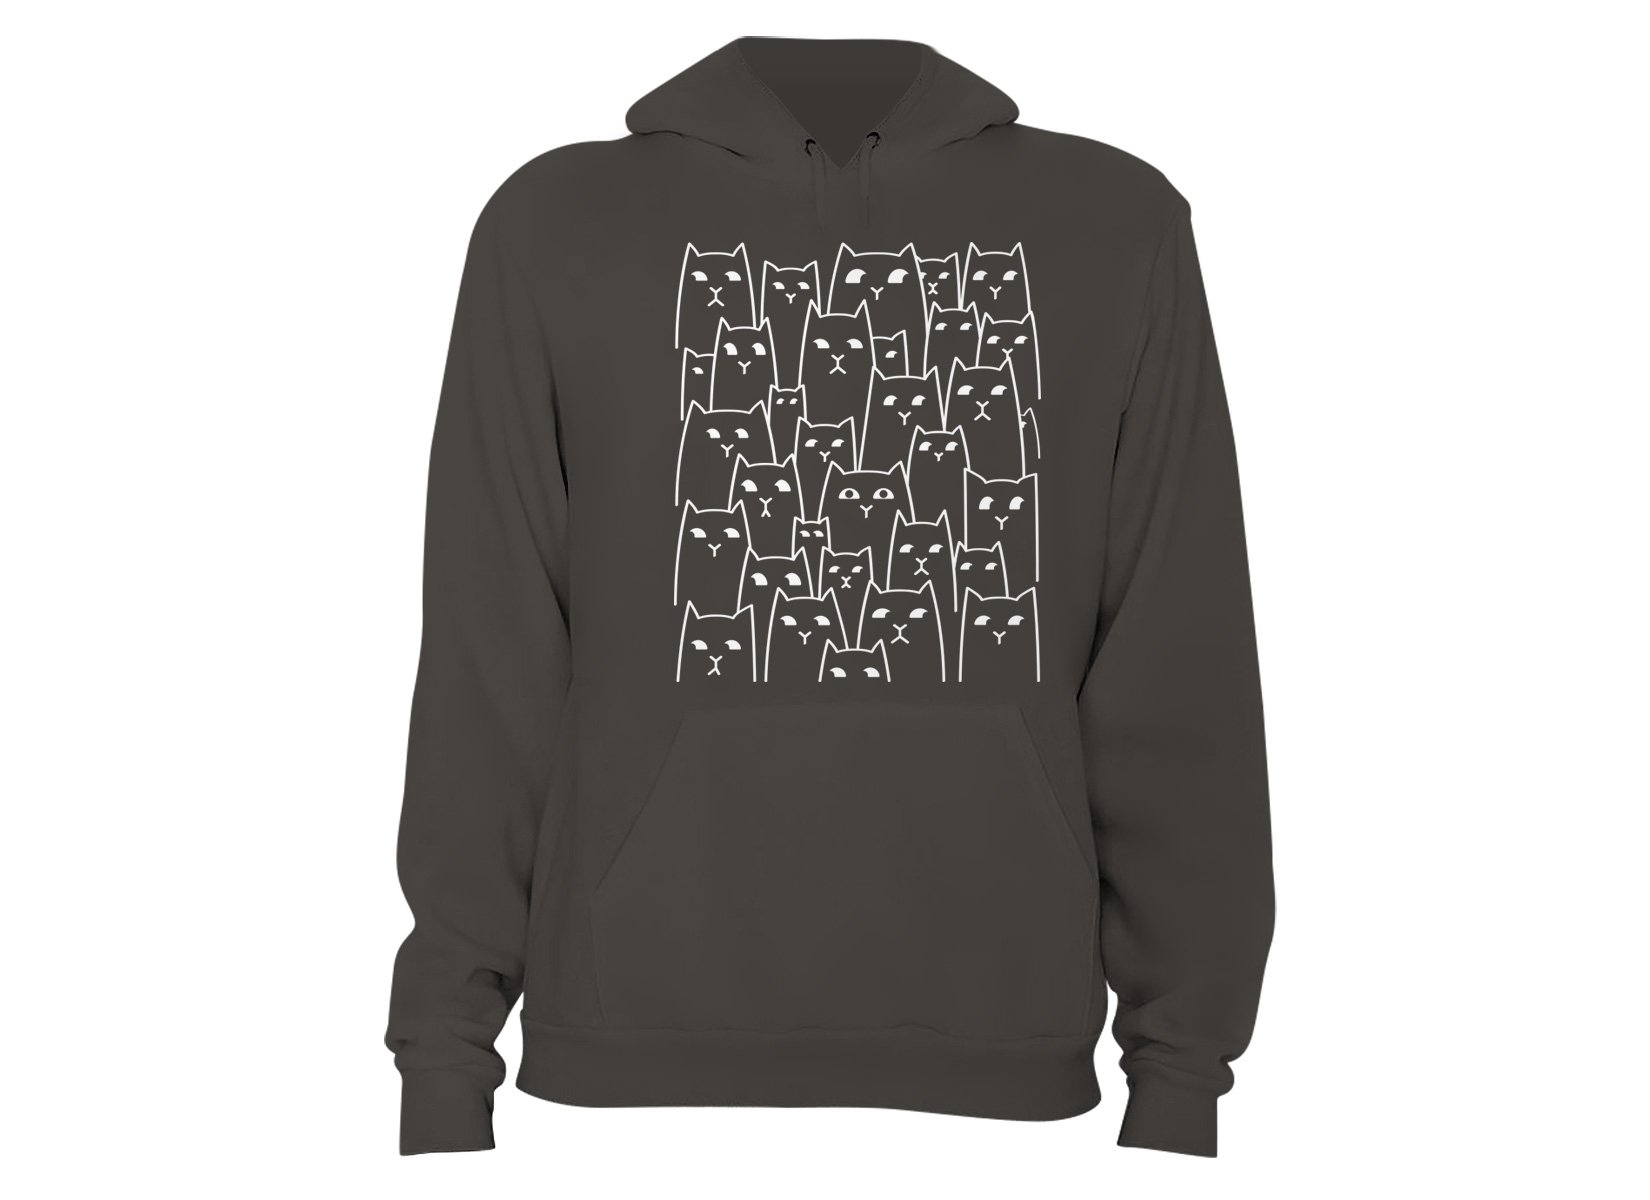 Suspicious Cats on Hoodie